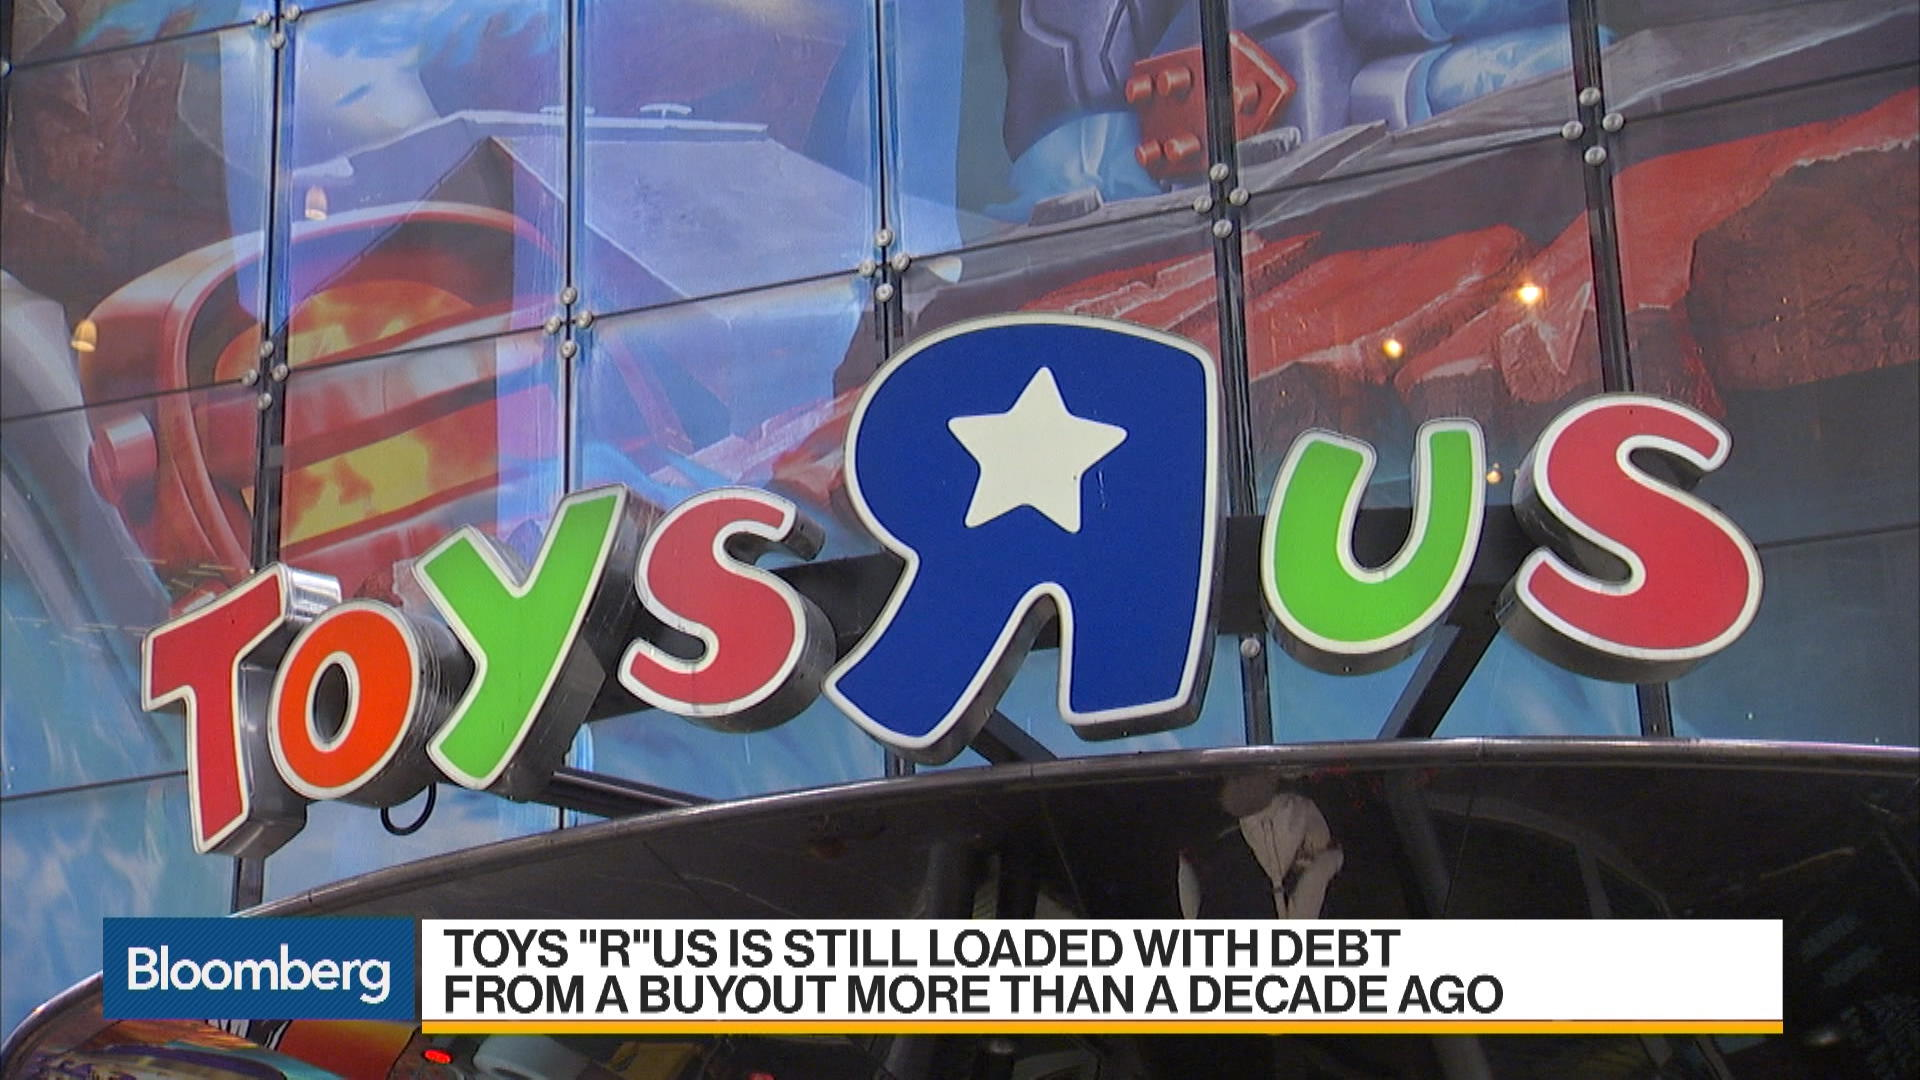 Toy R Us Store Catalog : Toys 'r us collapses into bankruptcy thanks to crushing